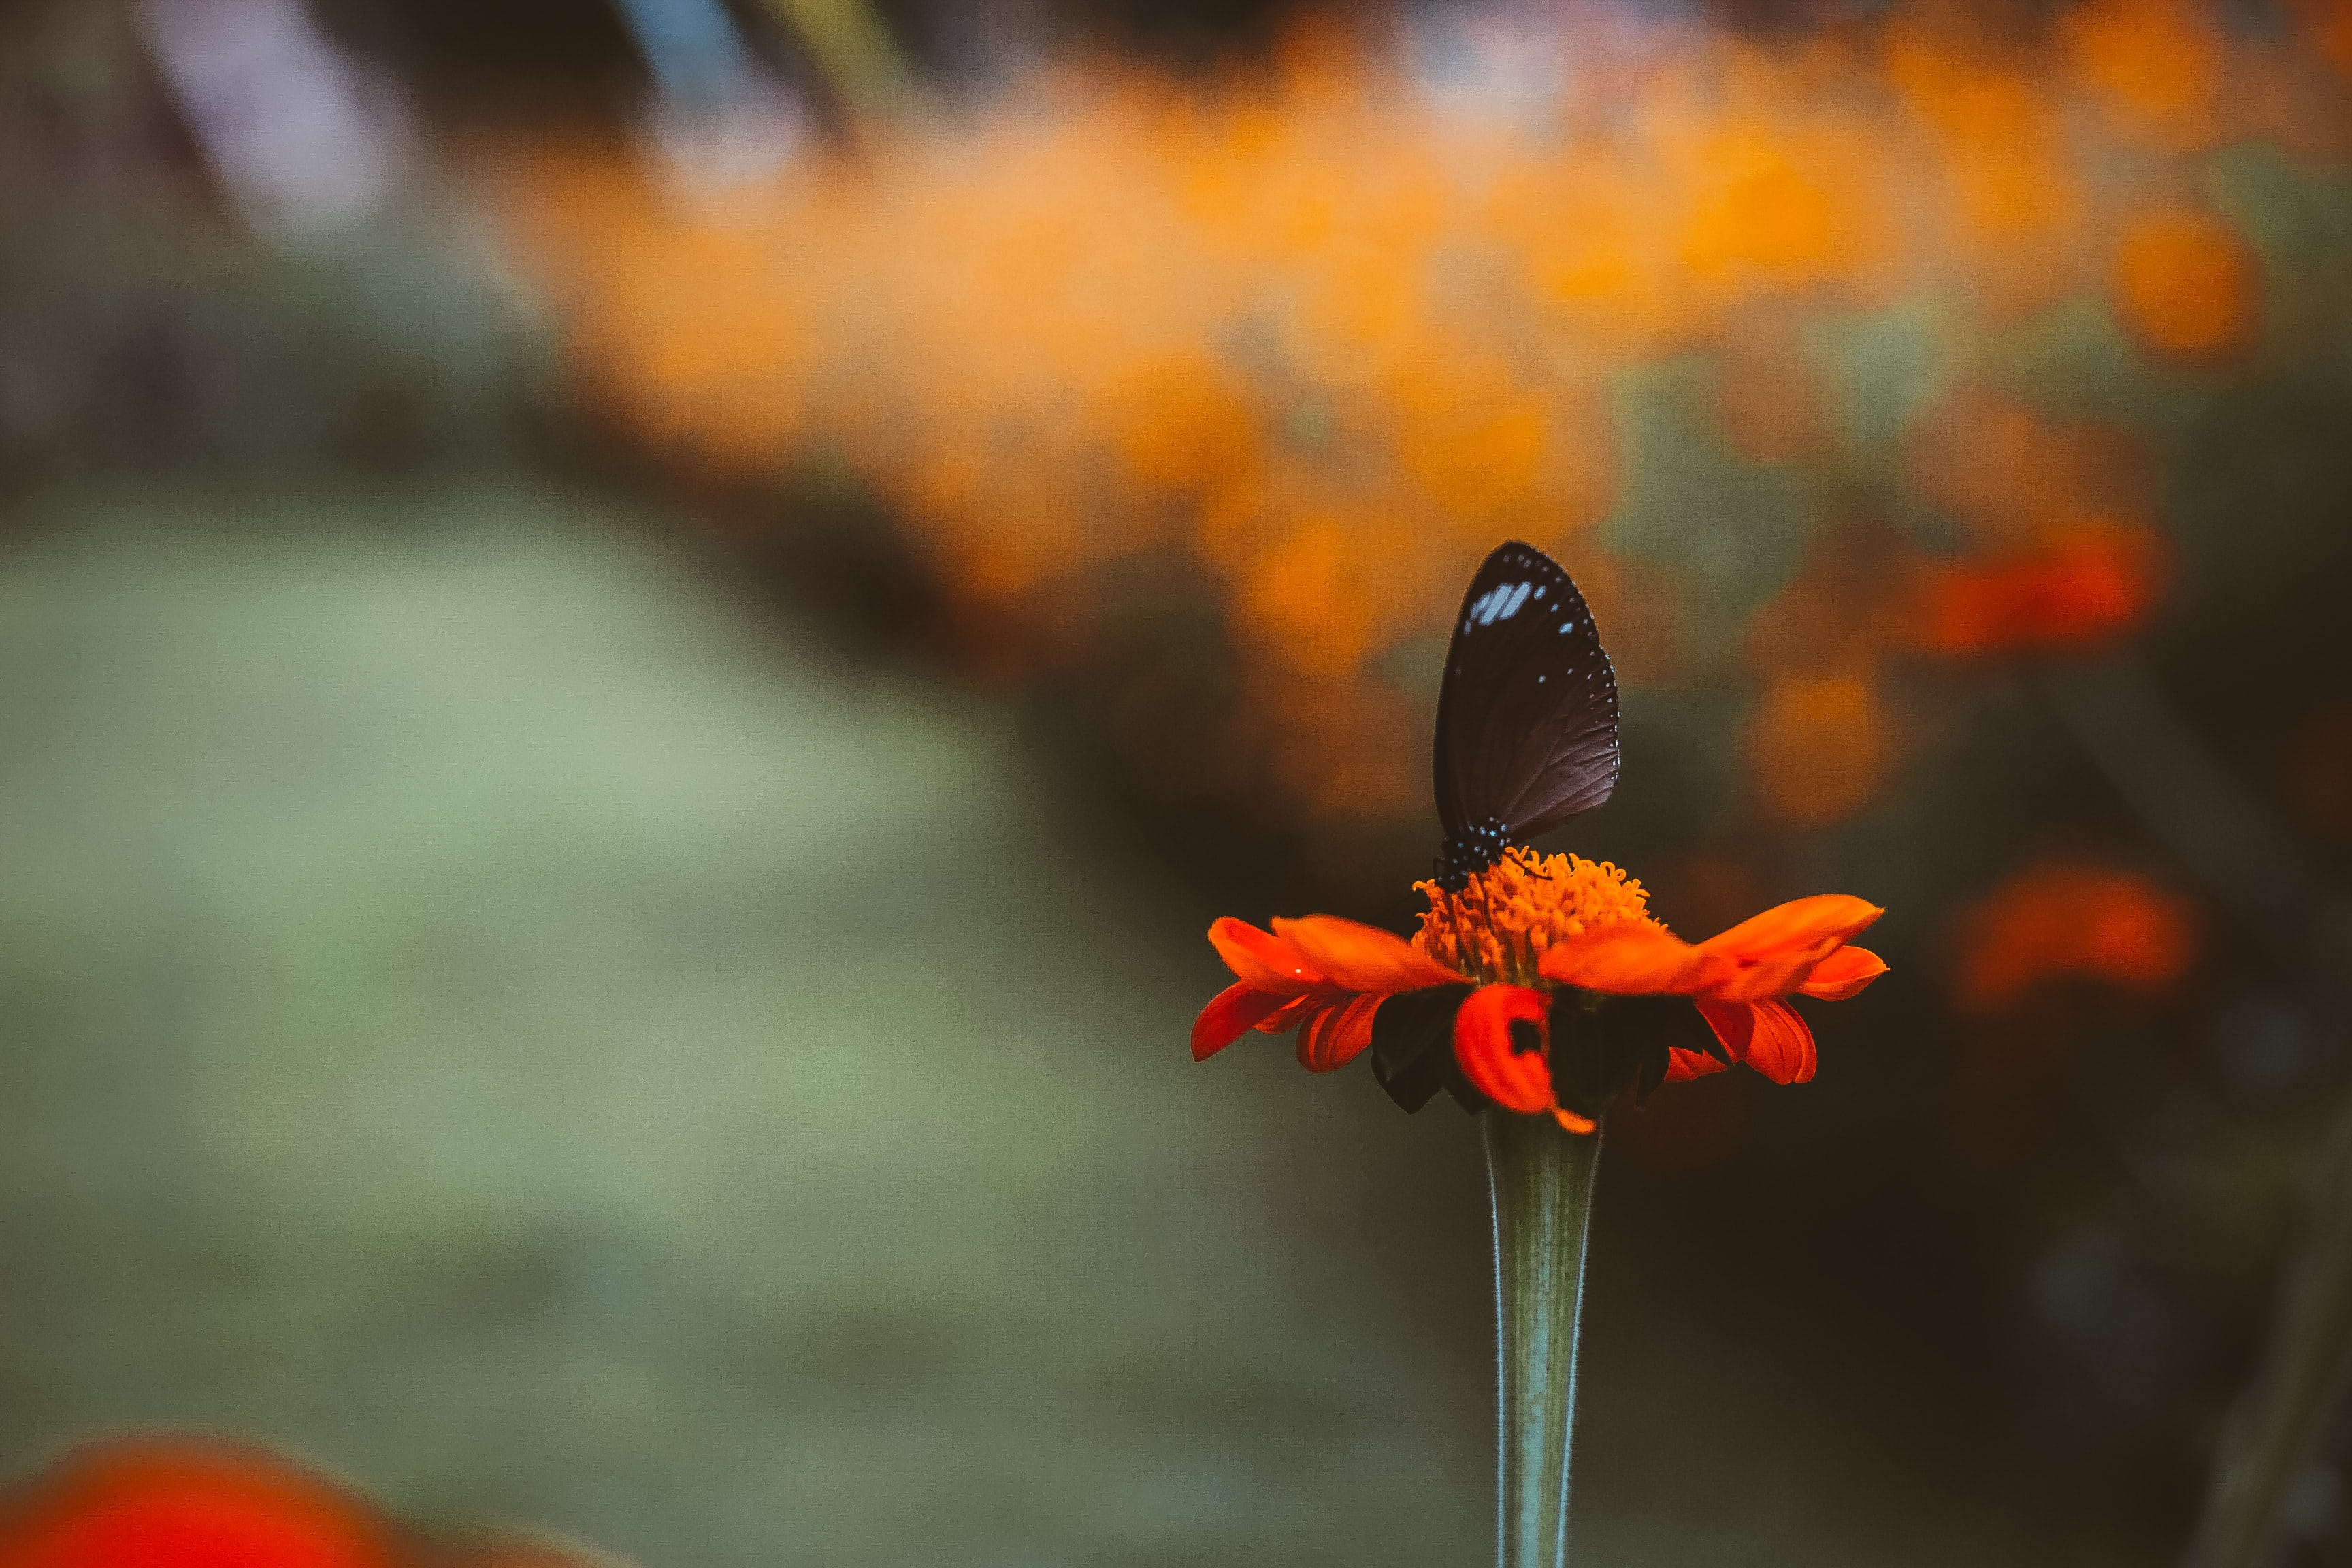 Close-up of a black butterfly on an orange flower